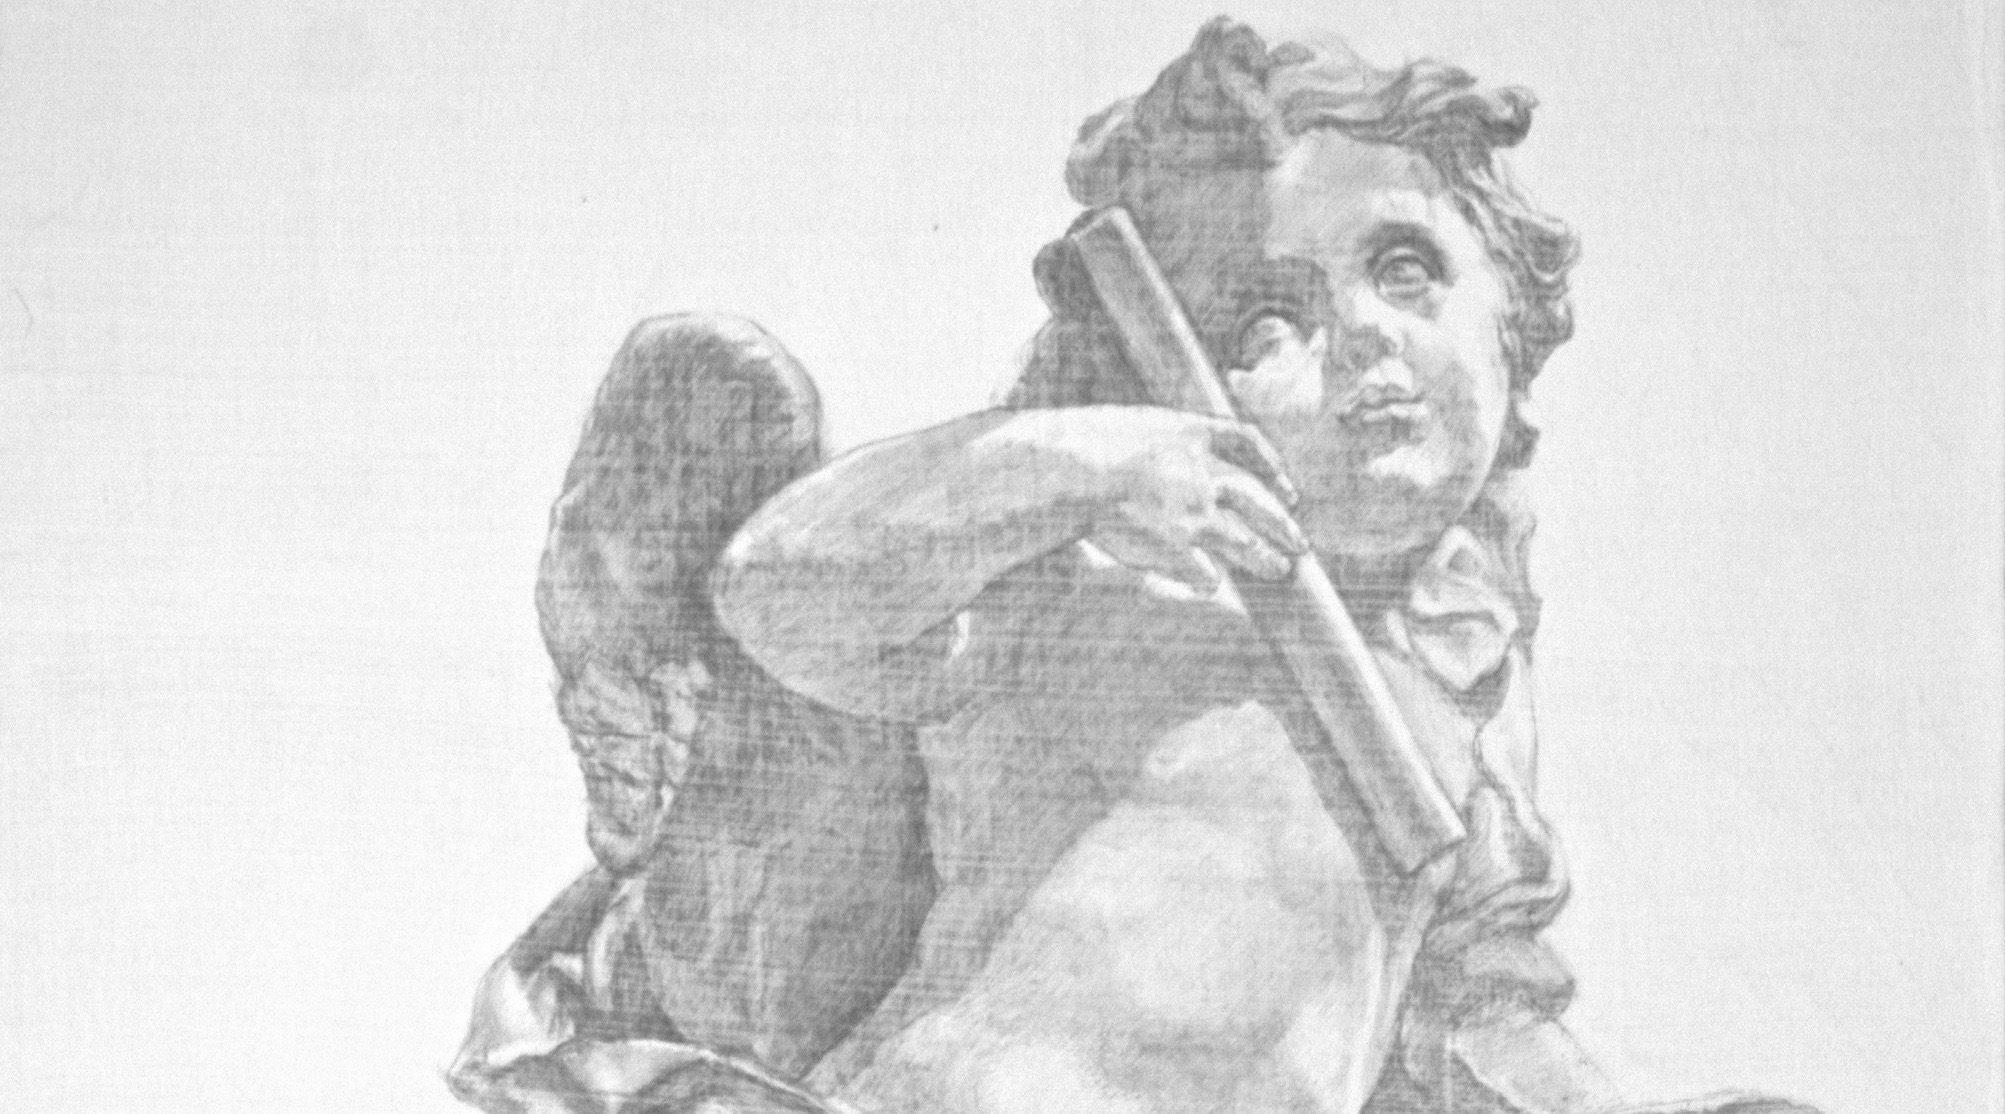 Sherry Camhy: Two Silverpoint Exhibitions